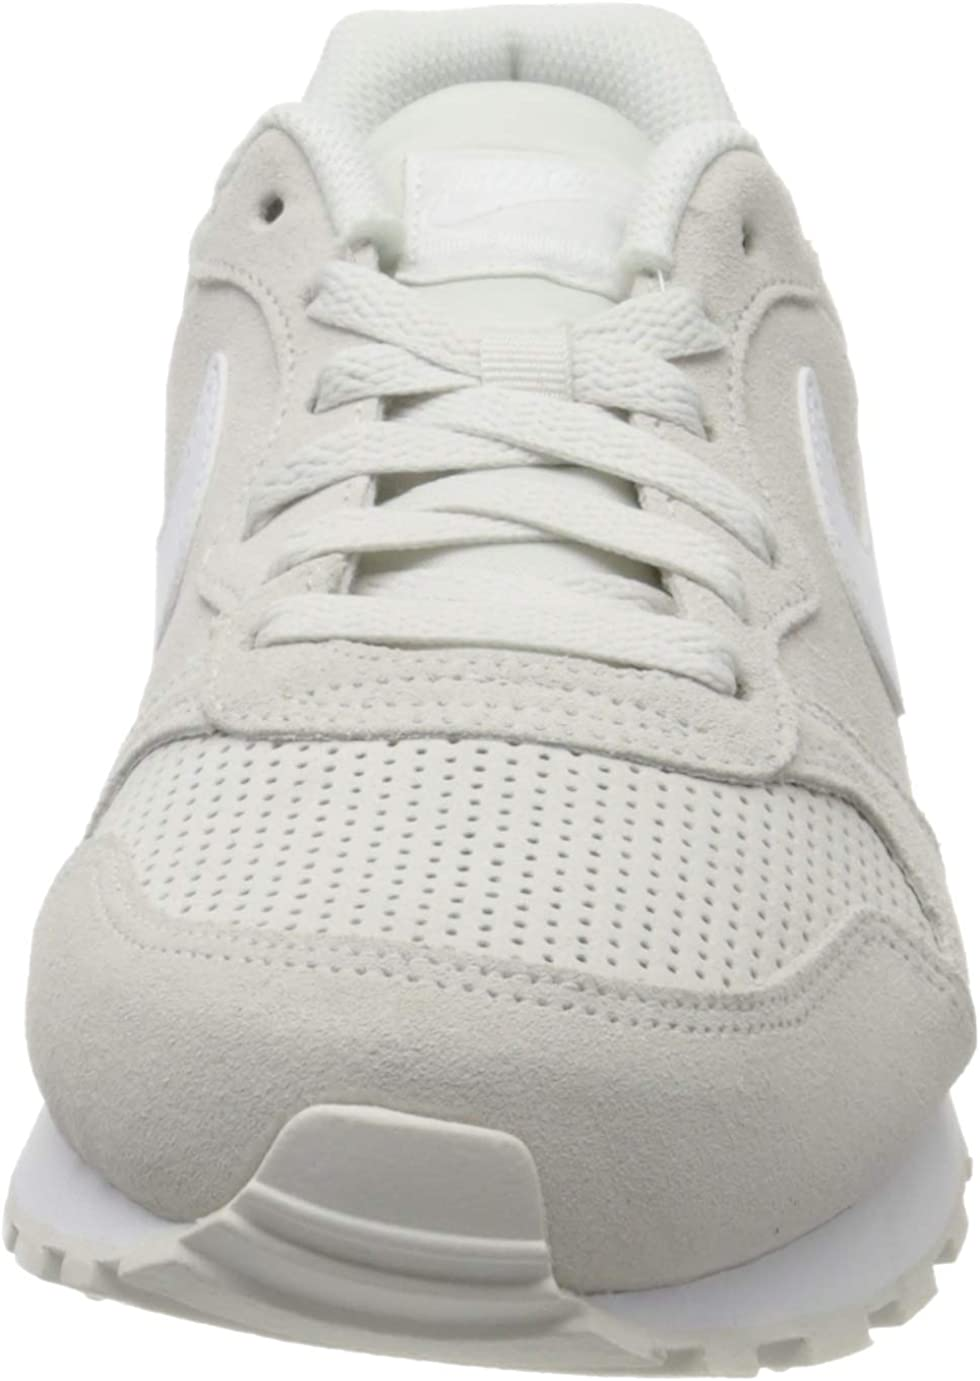 Nike MD Runner 2 Suede Running Shoe para Hombre